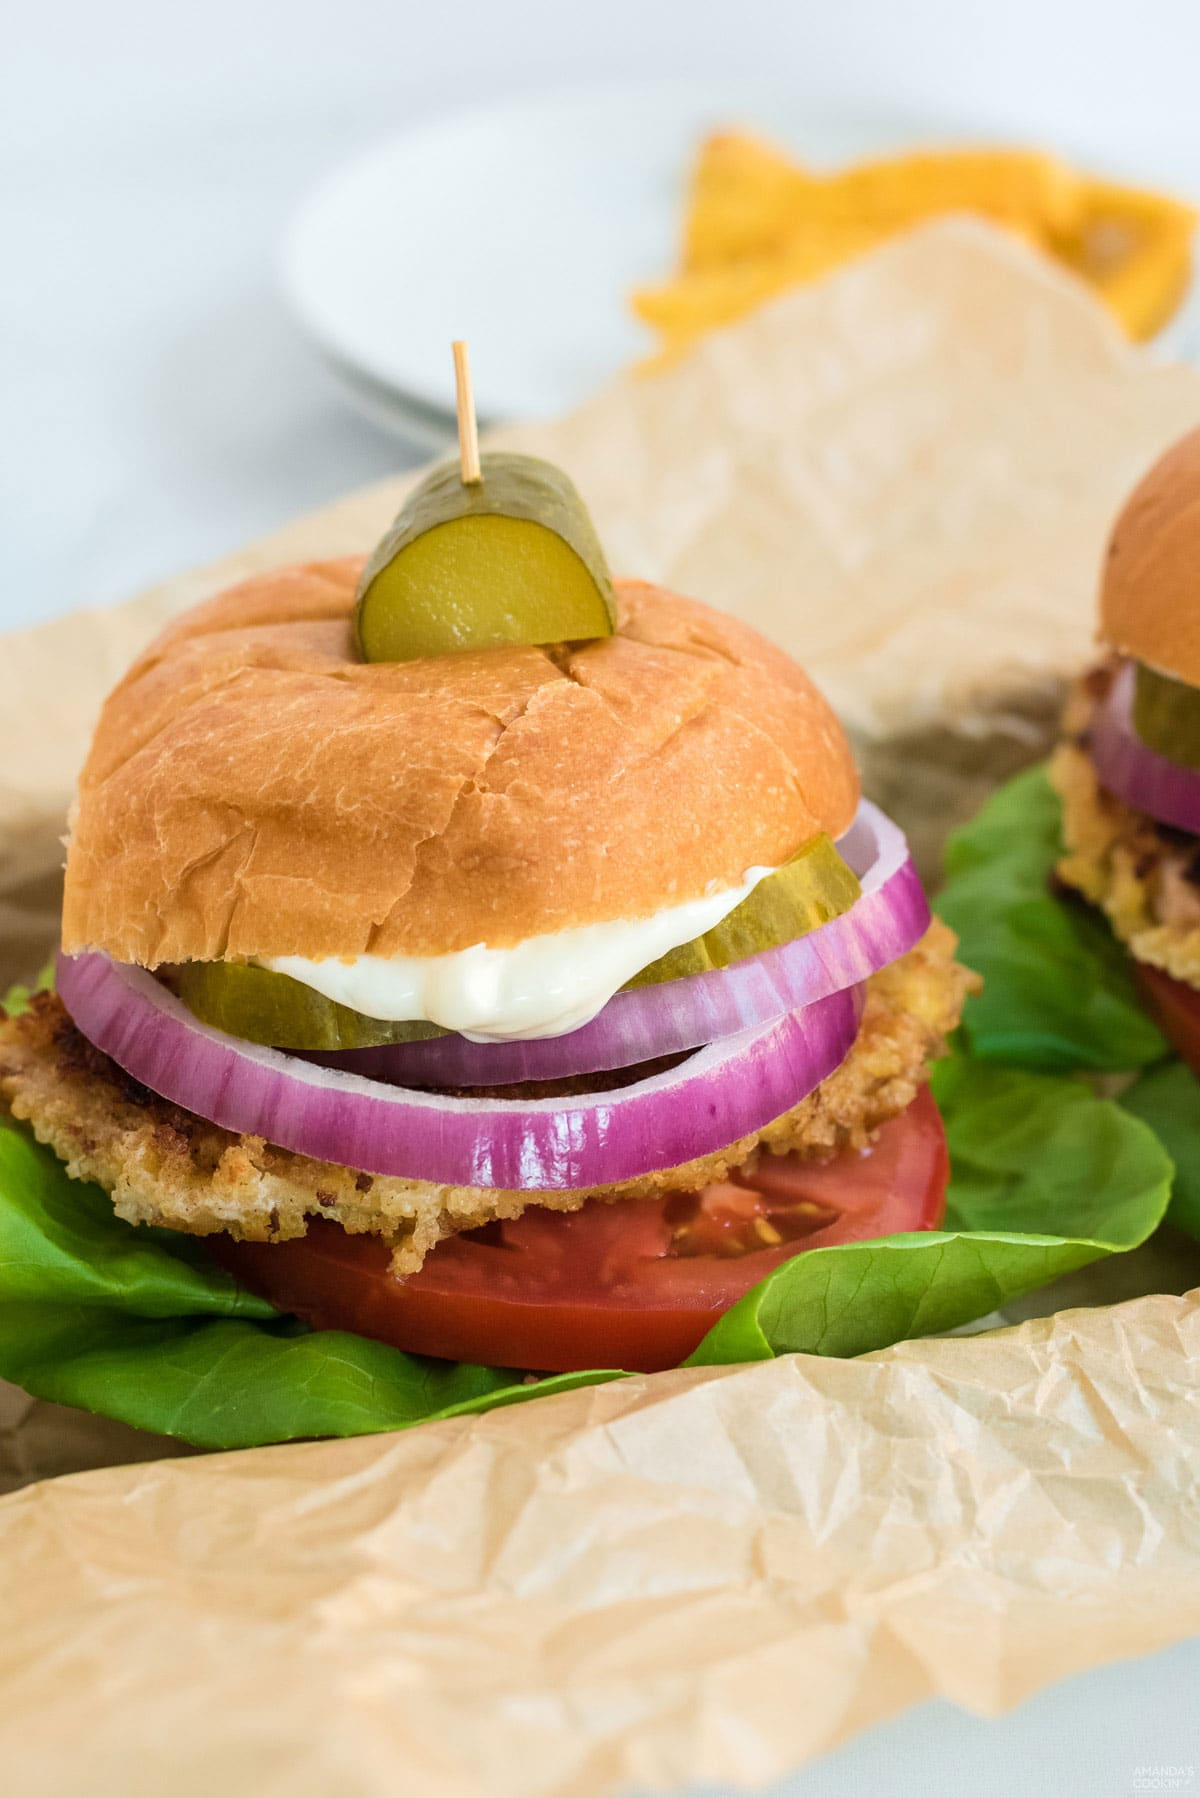 pork tenderloin sandwich with a pickle garnish